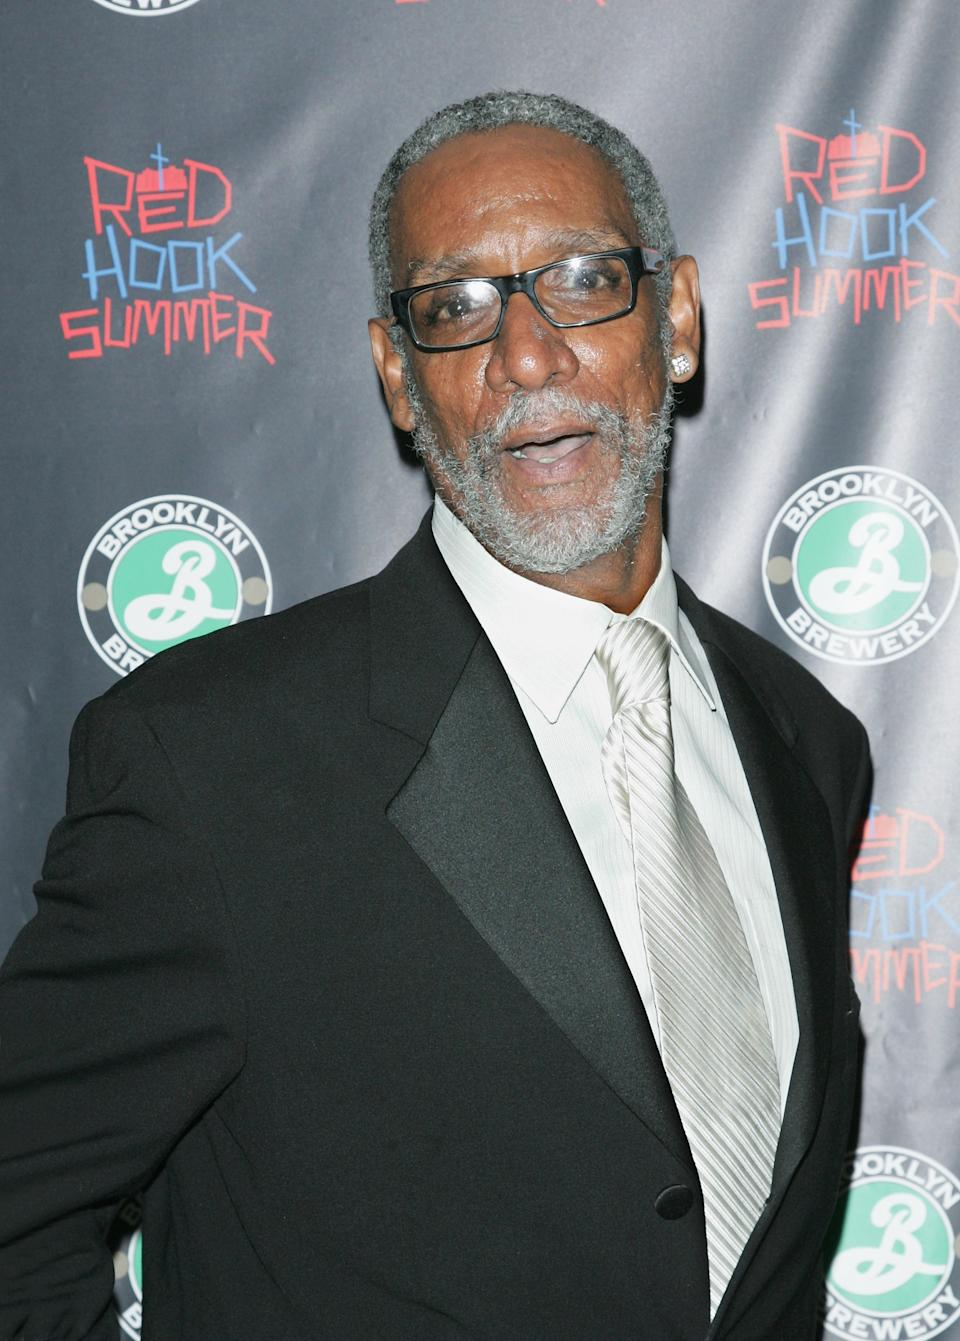 """NEW YORK, NY - AUGUST 06: Thomas Jefferson Byrd attends the """"Red Hook Summer"""" premiere at the DGA Theater on August 6, 2012 in New York City. (Photo by Jim Spellman/WireImage)"""